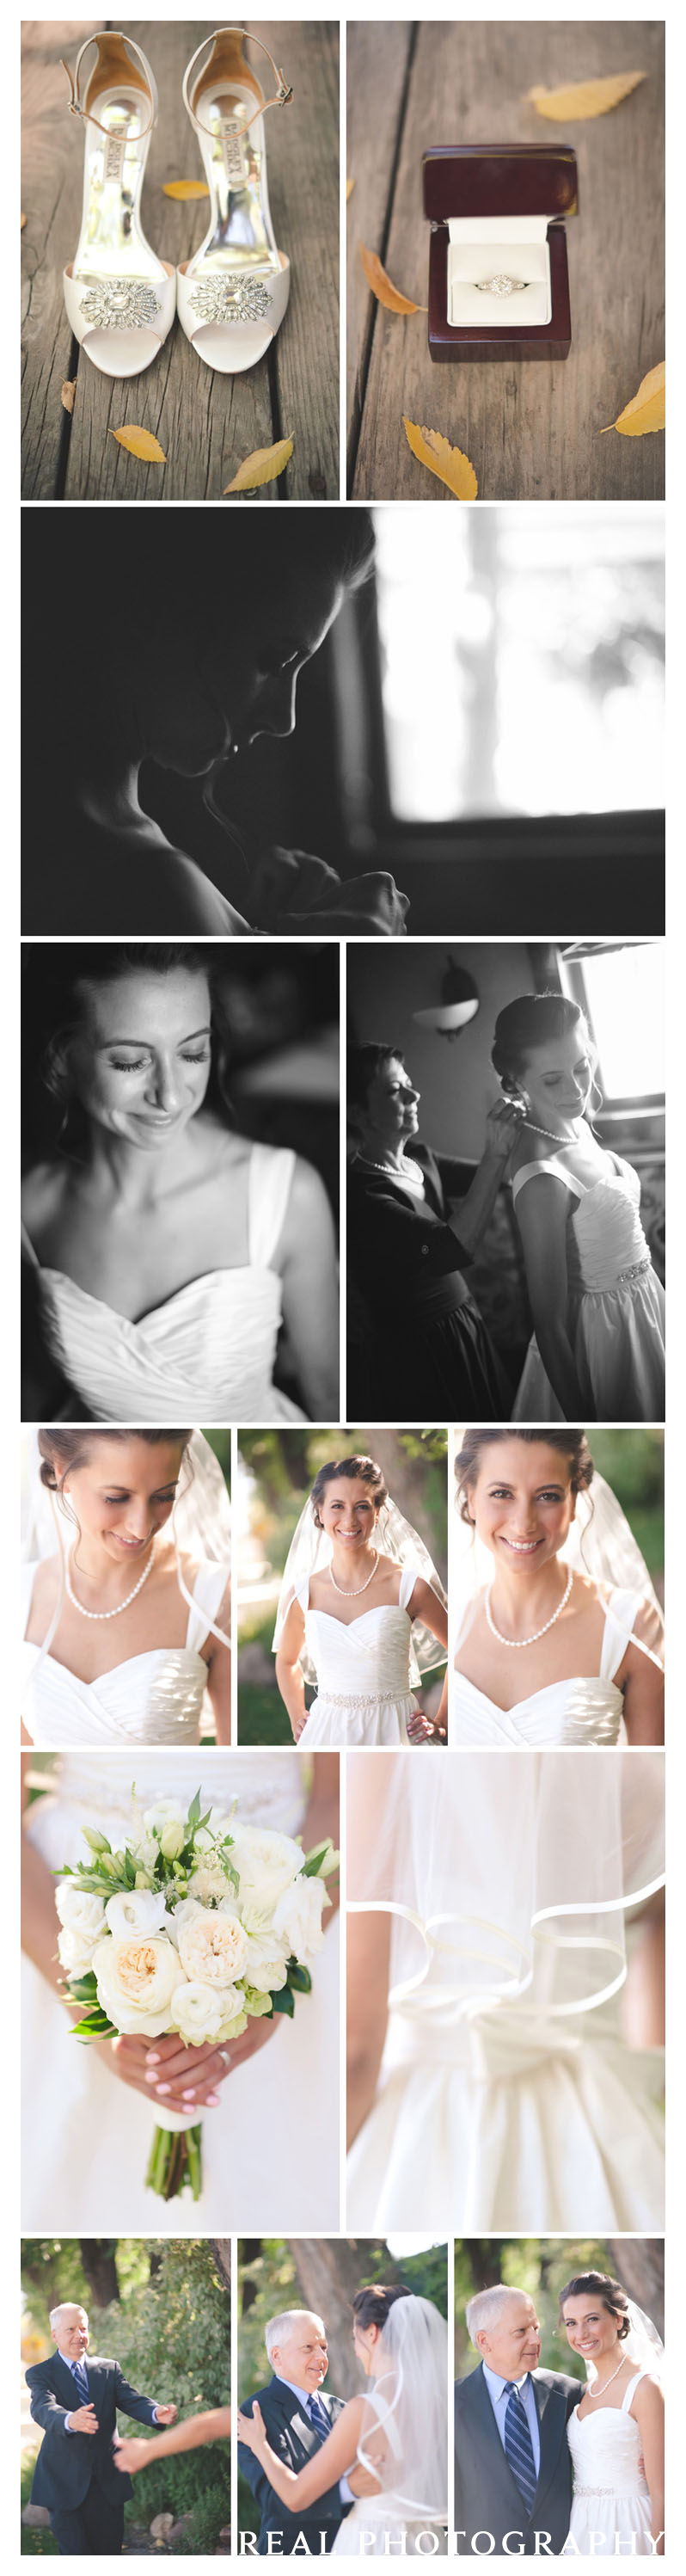 wedding photographer greenbriar inn